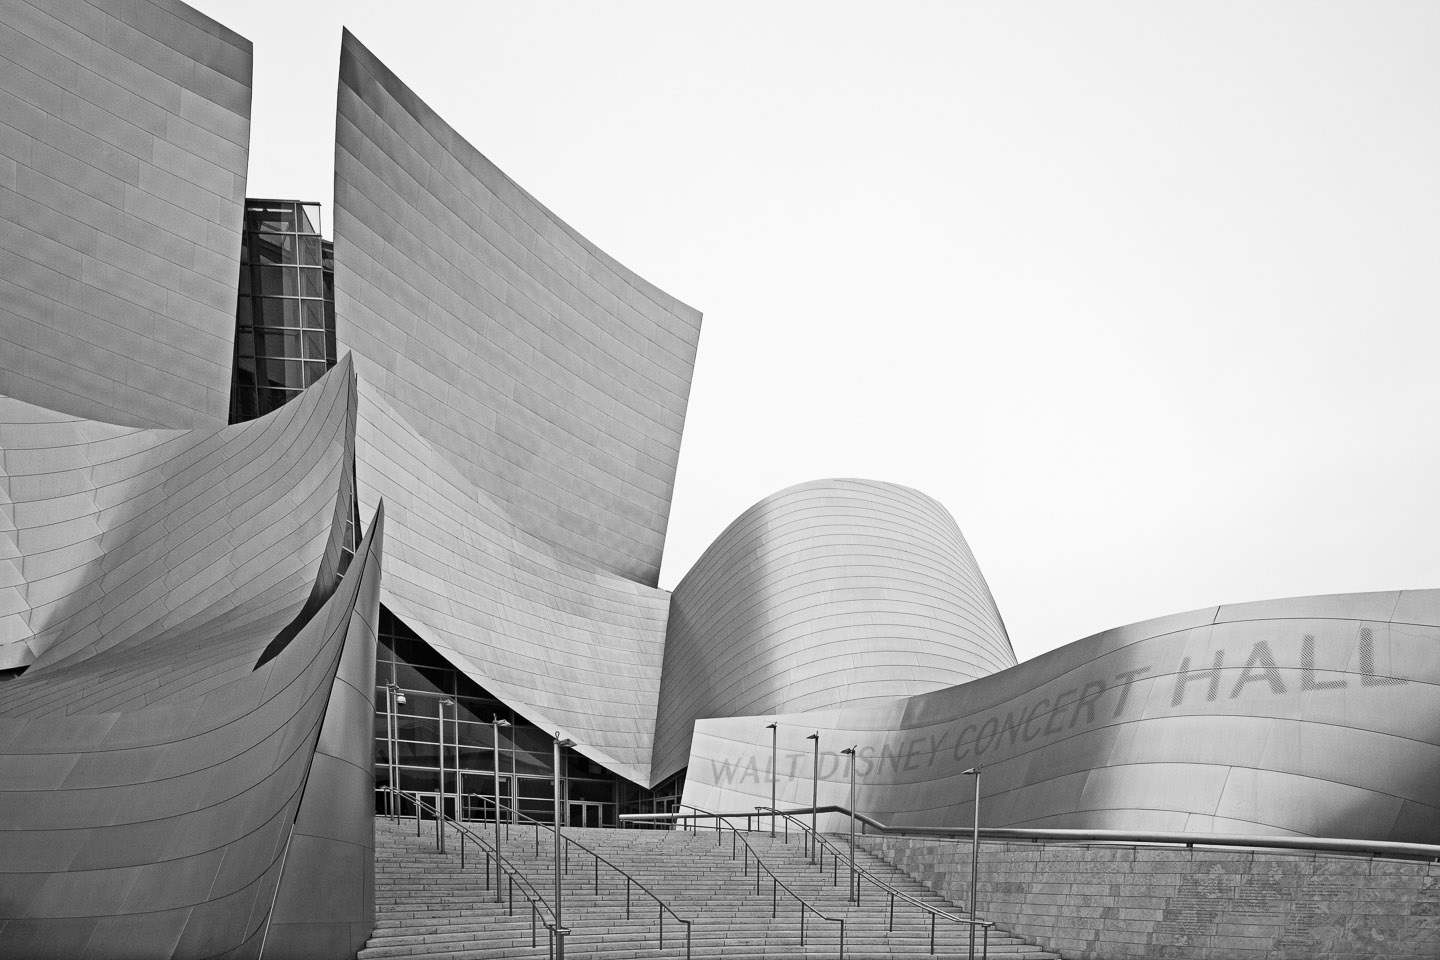 the main entrance of the Walt Disney Concert Hall, designed by Frank Gehry, located in Los Angeles, photographed by Jacob Rosenfeld